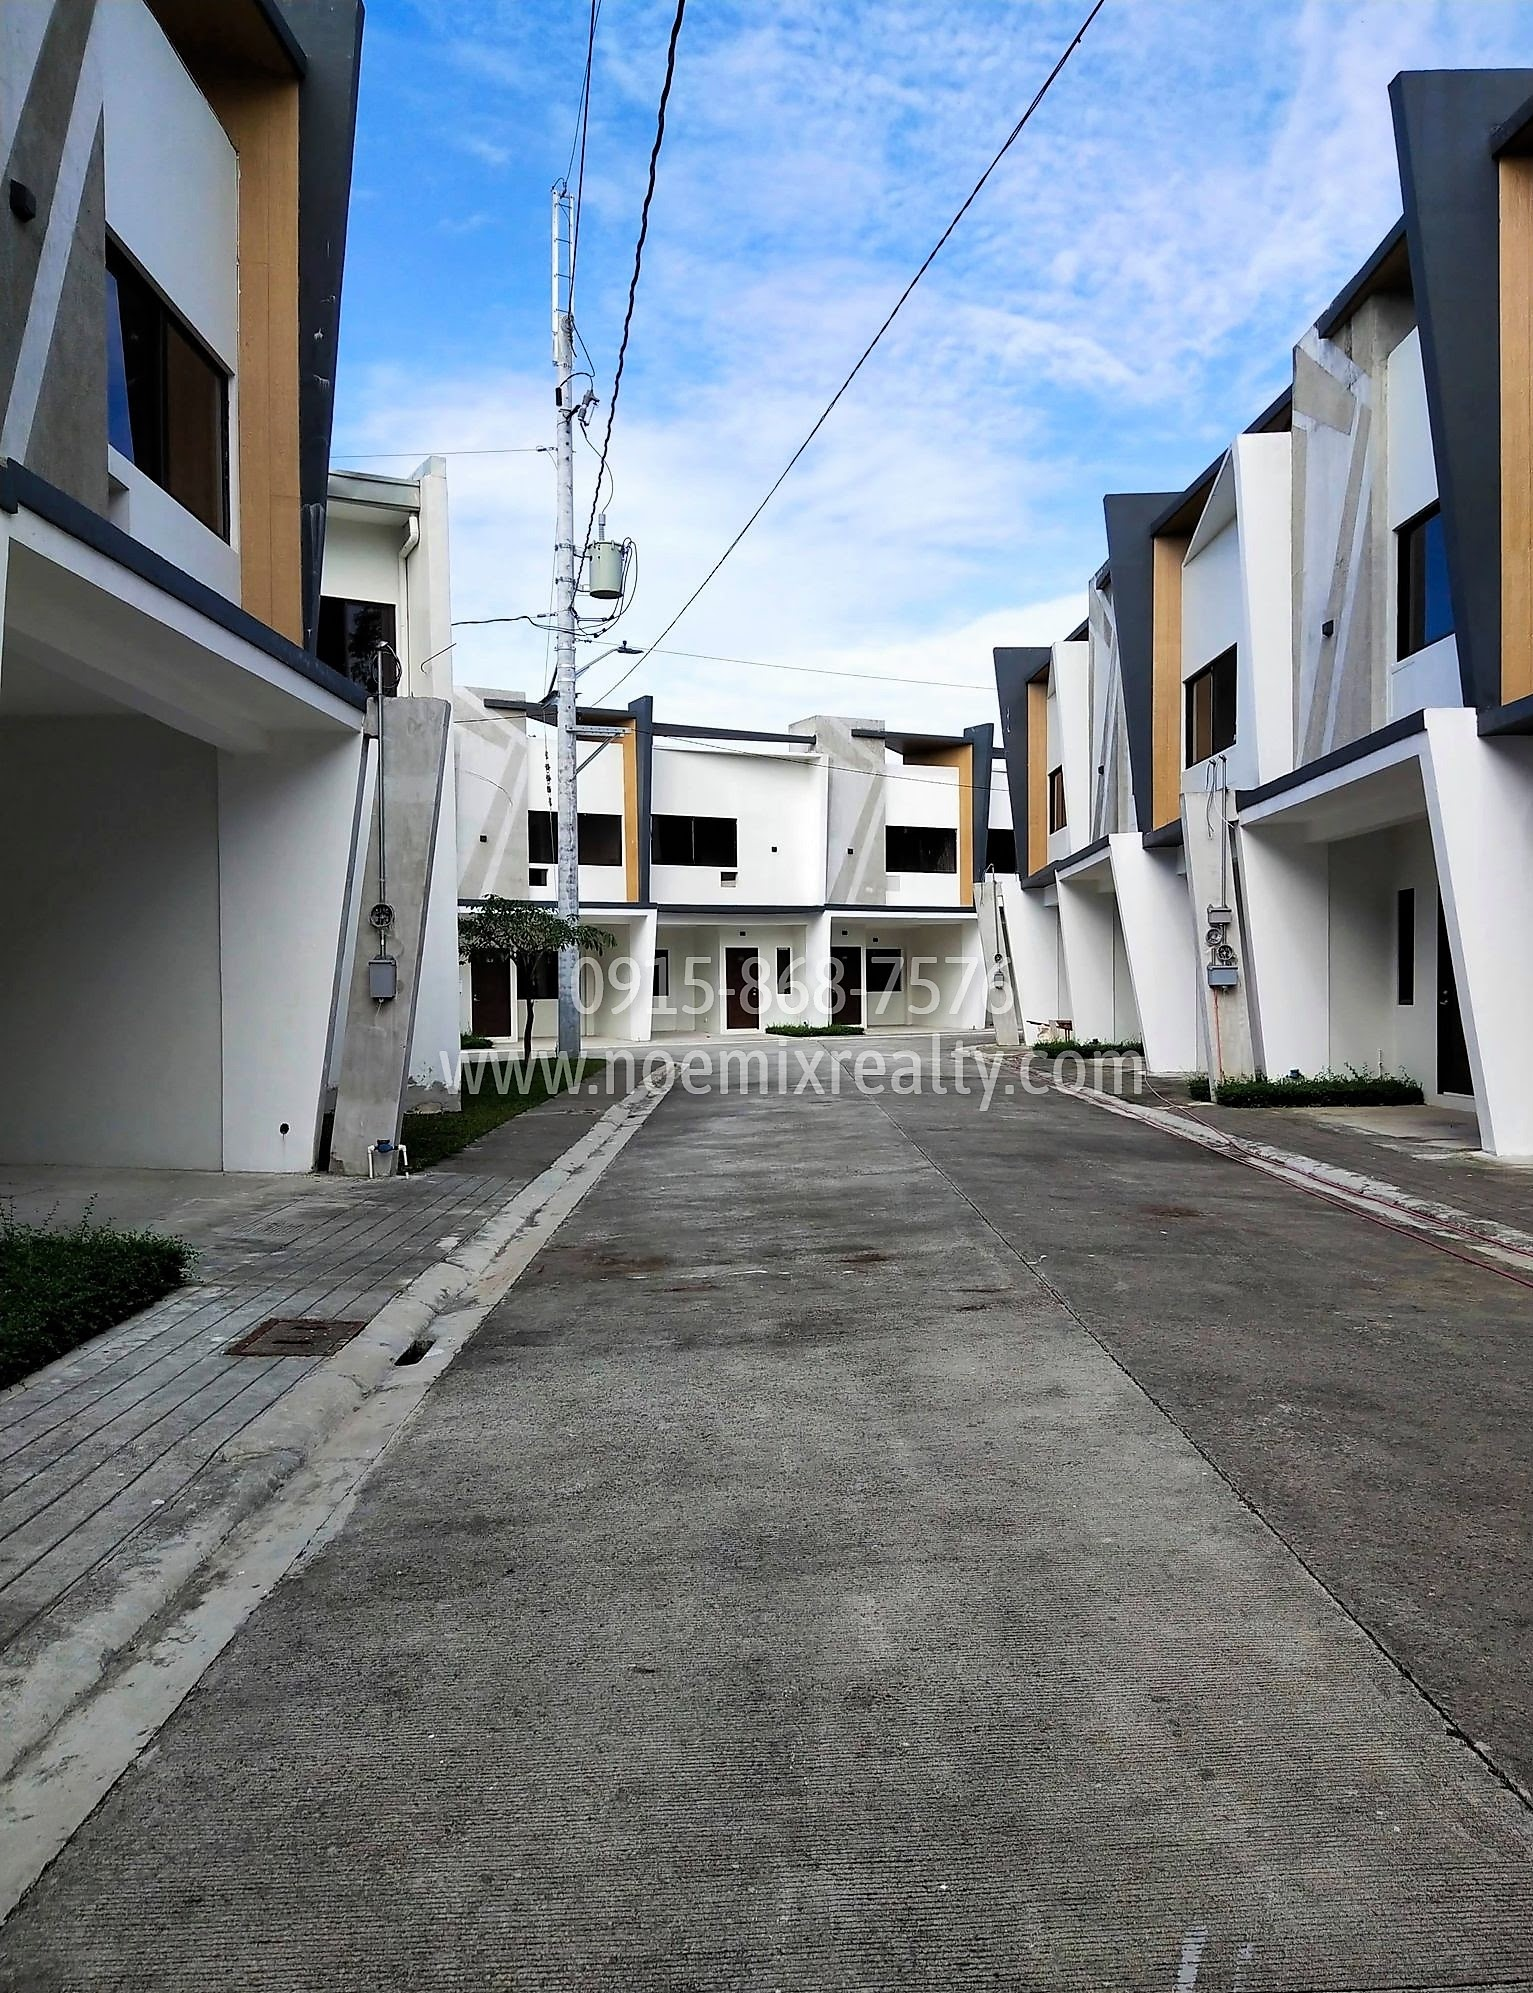 Enclave at Kingspoint, Bagbag Novaliches, Quezon City